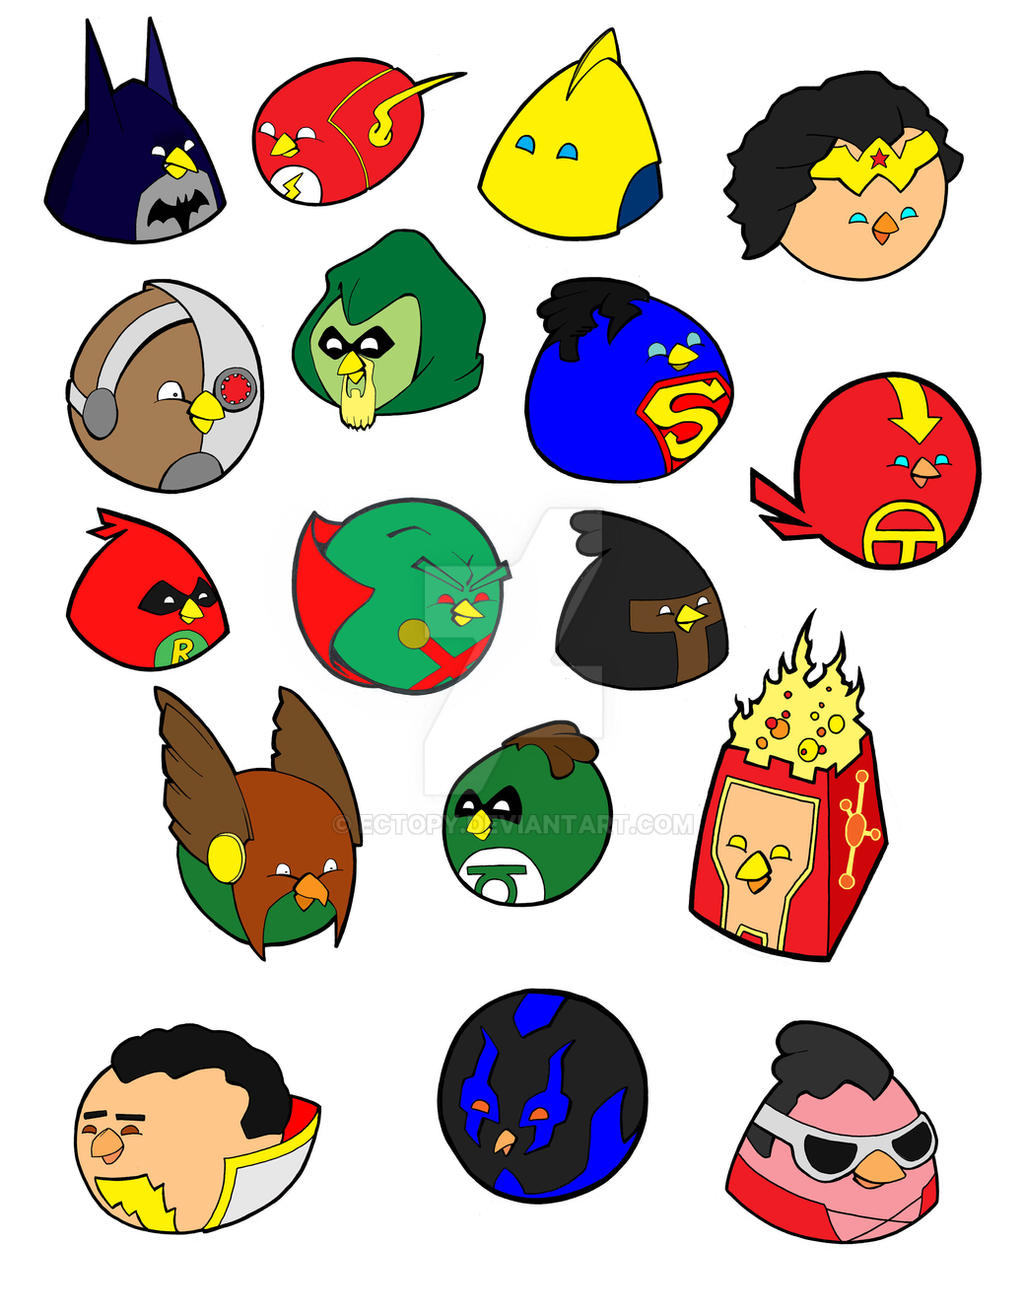 Angry Birds Heroes by MTP02 on DeviantArt